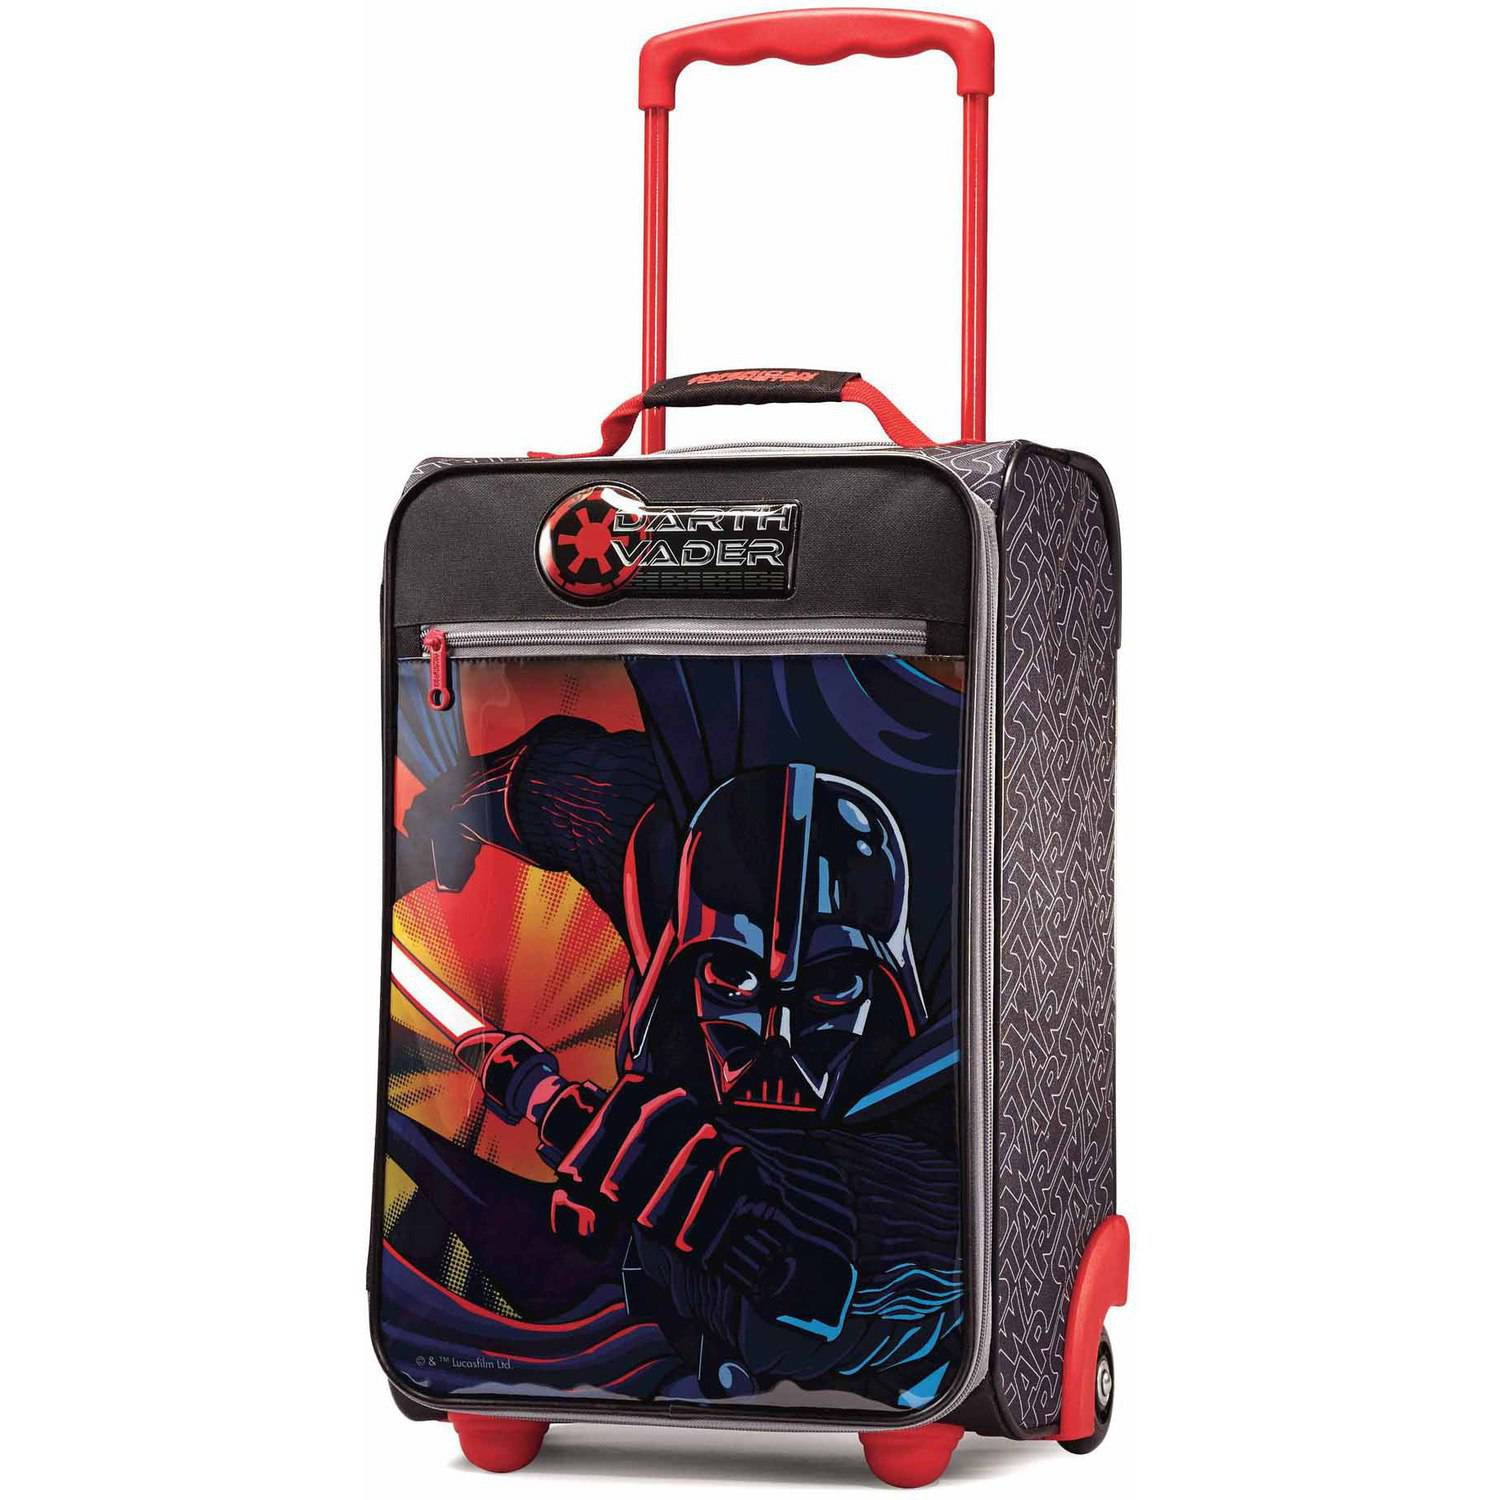 "American Tourister Disney Star Wars Darth Vader 18"" Upright Soft Side Suitcase"